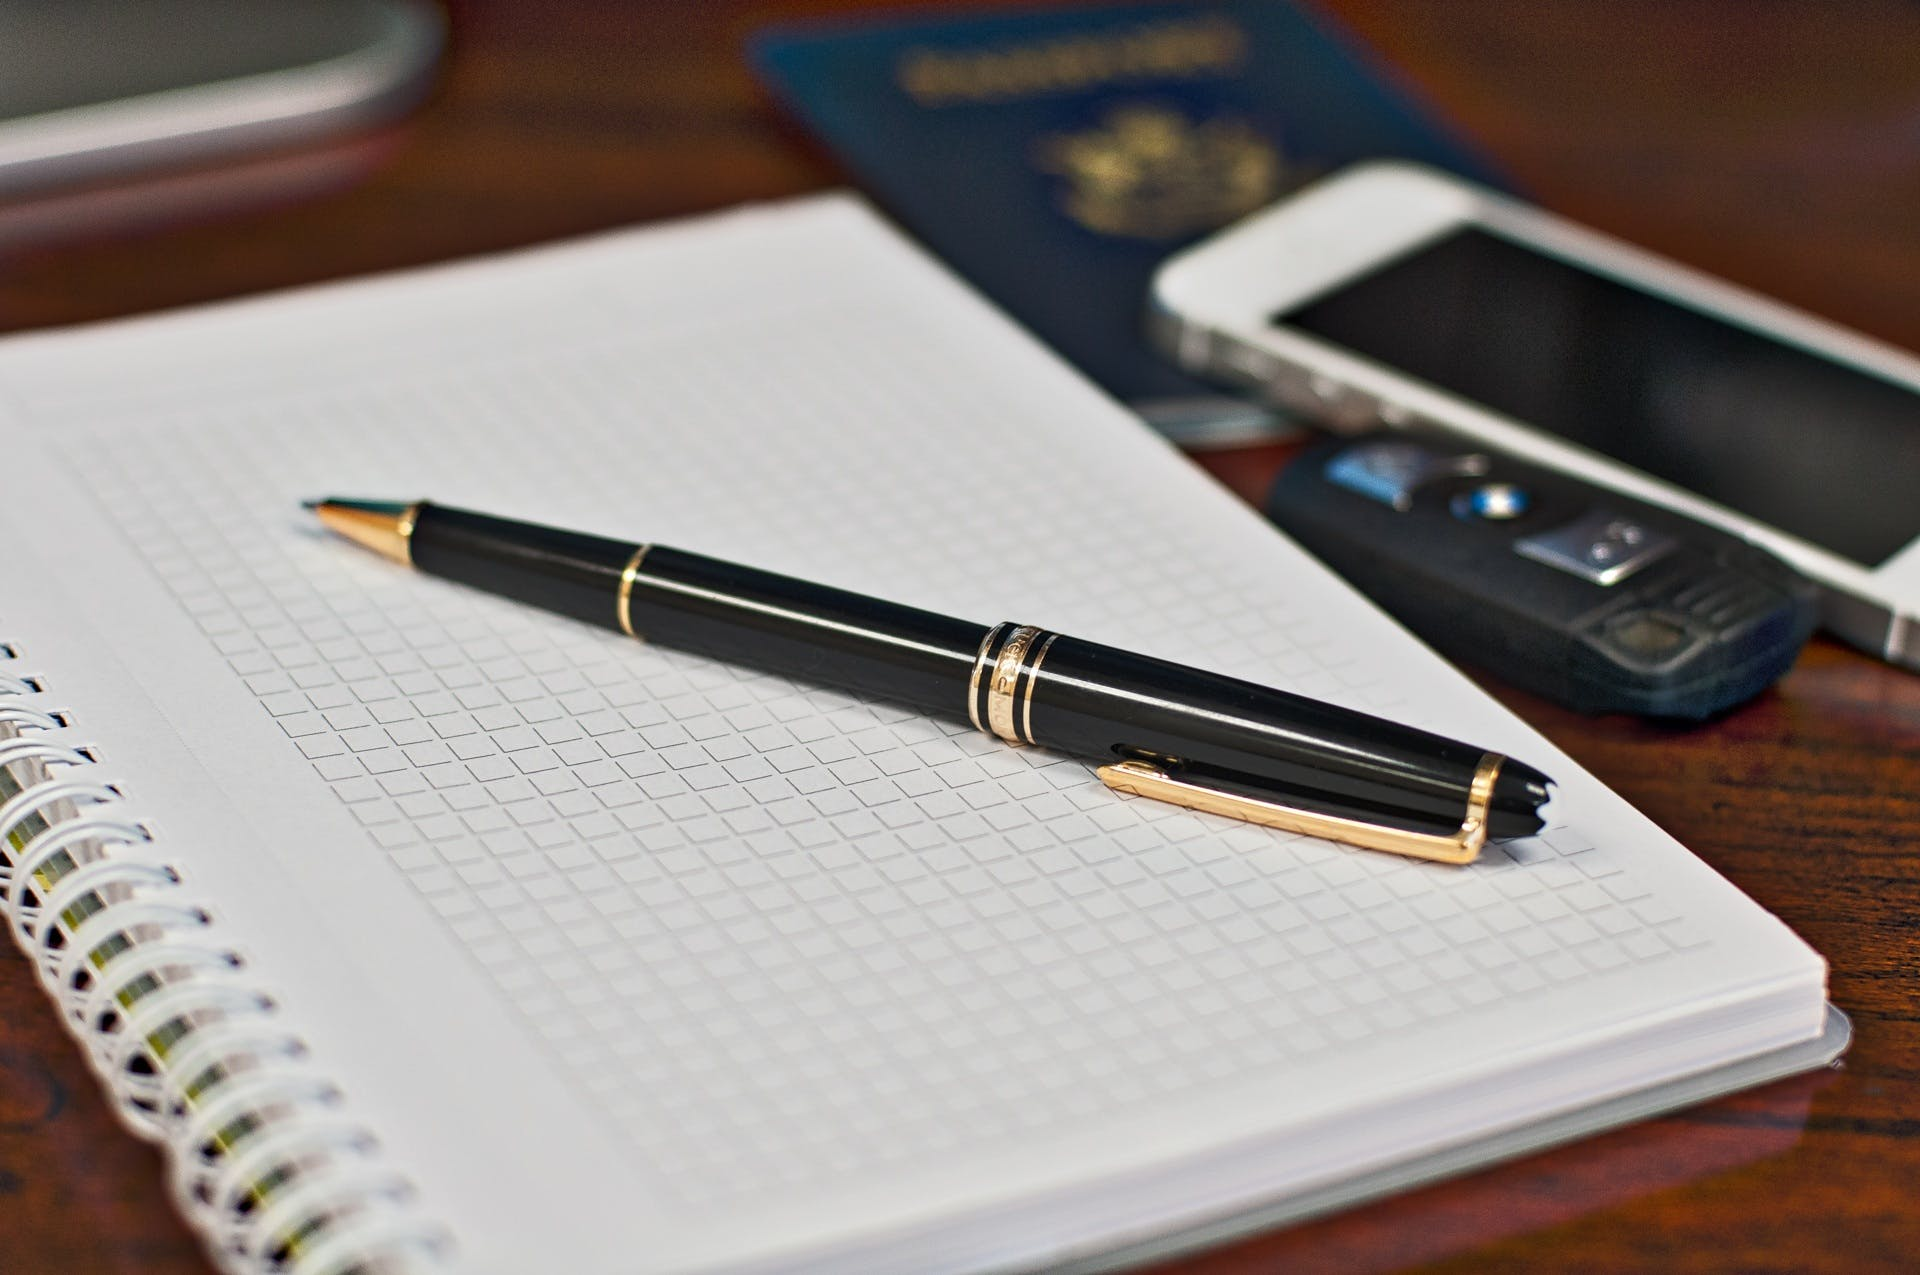 Black and Gold Twist Pen Near White Smartphone